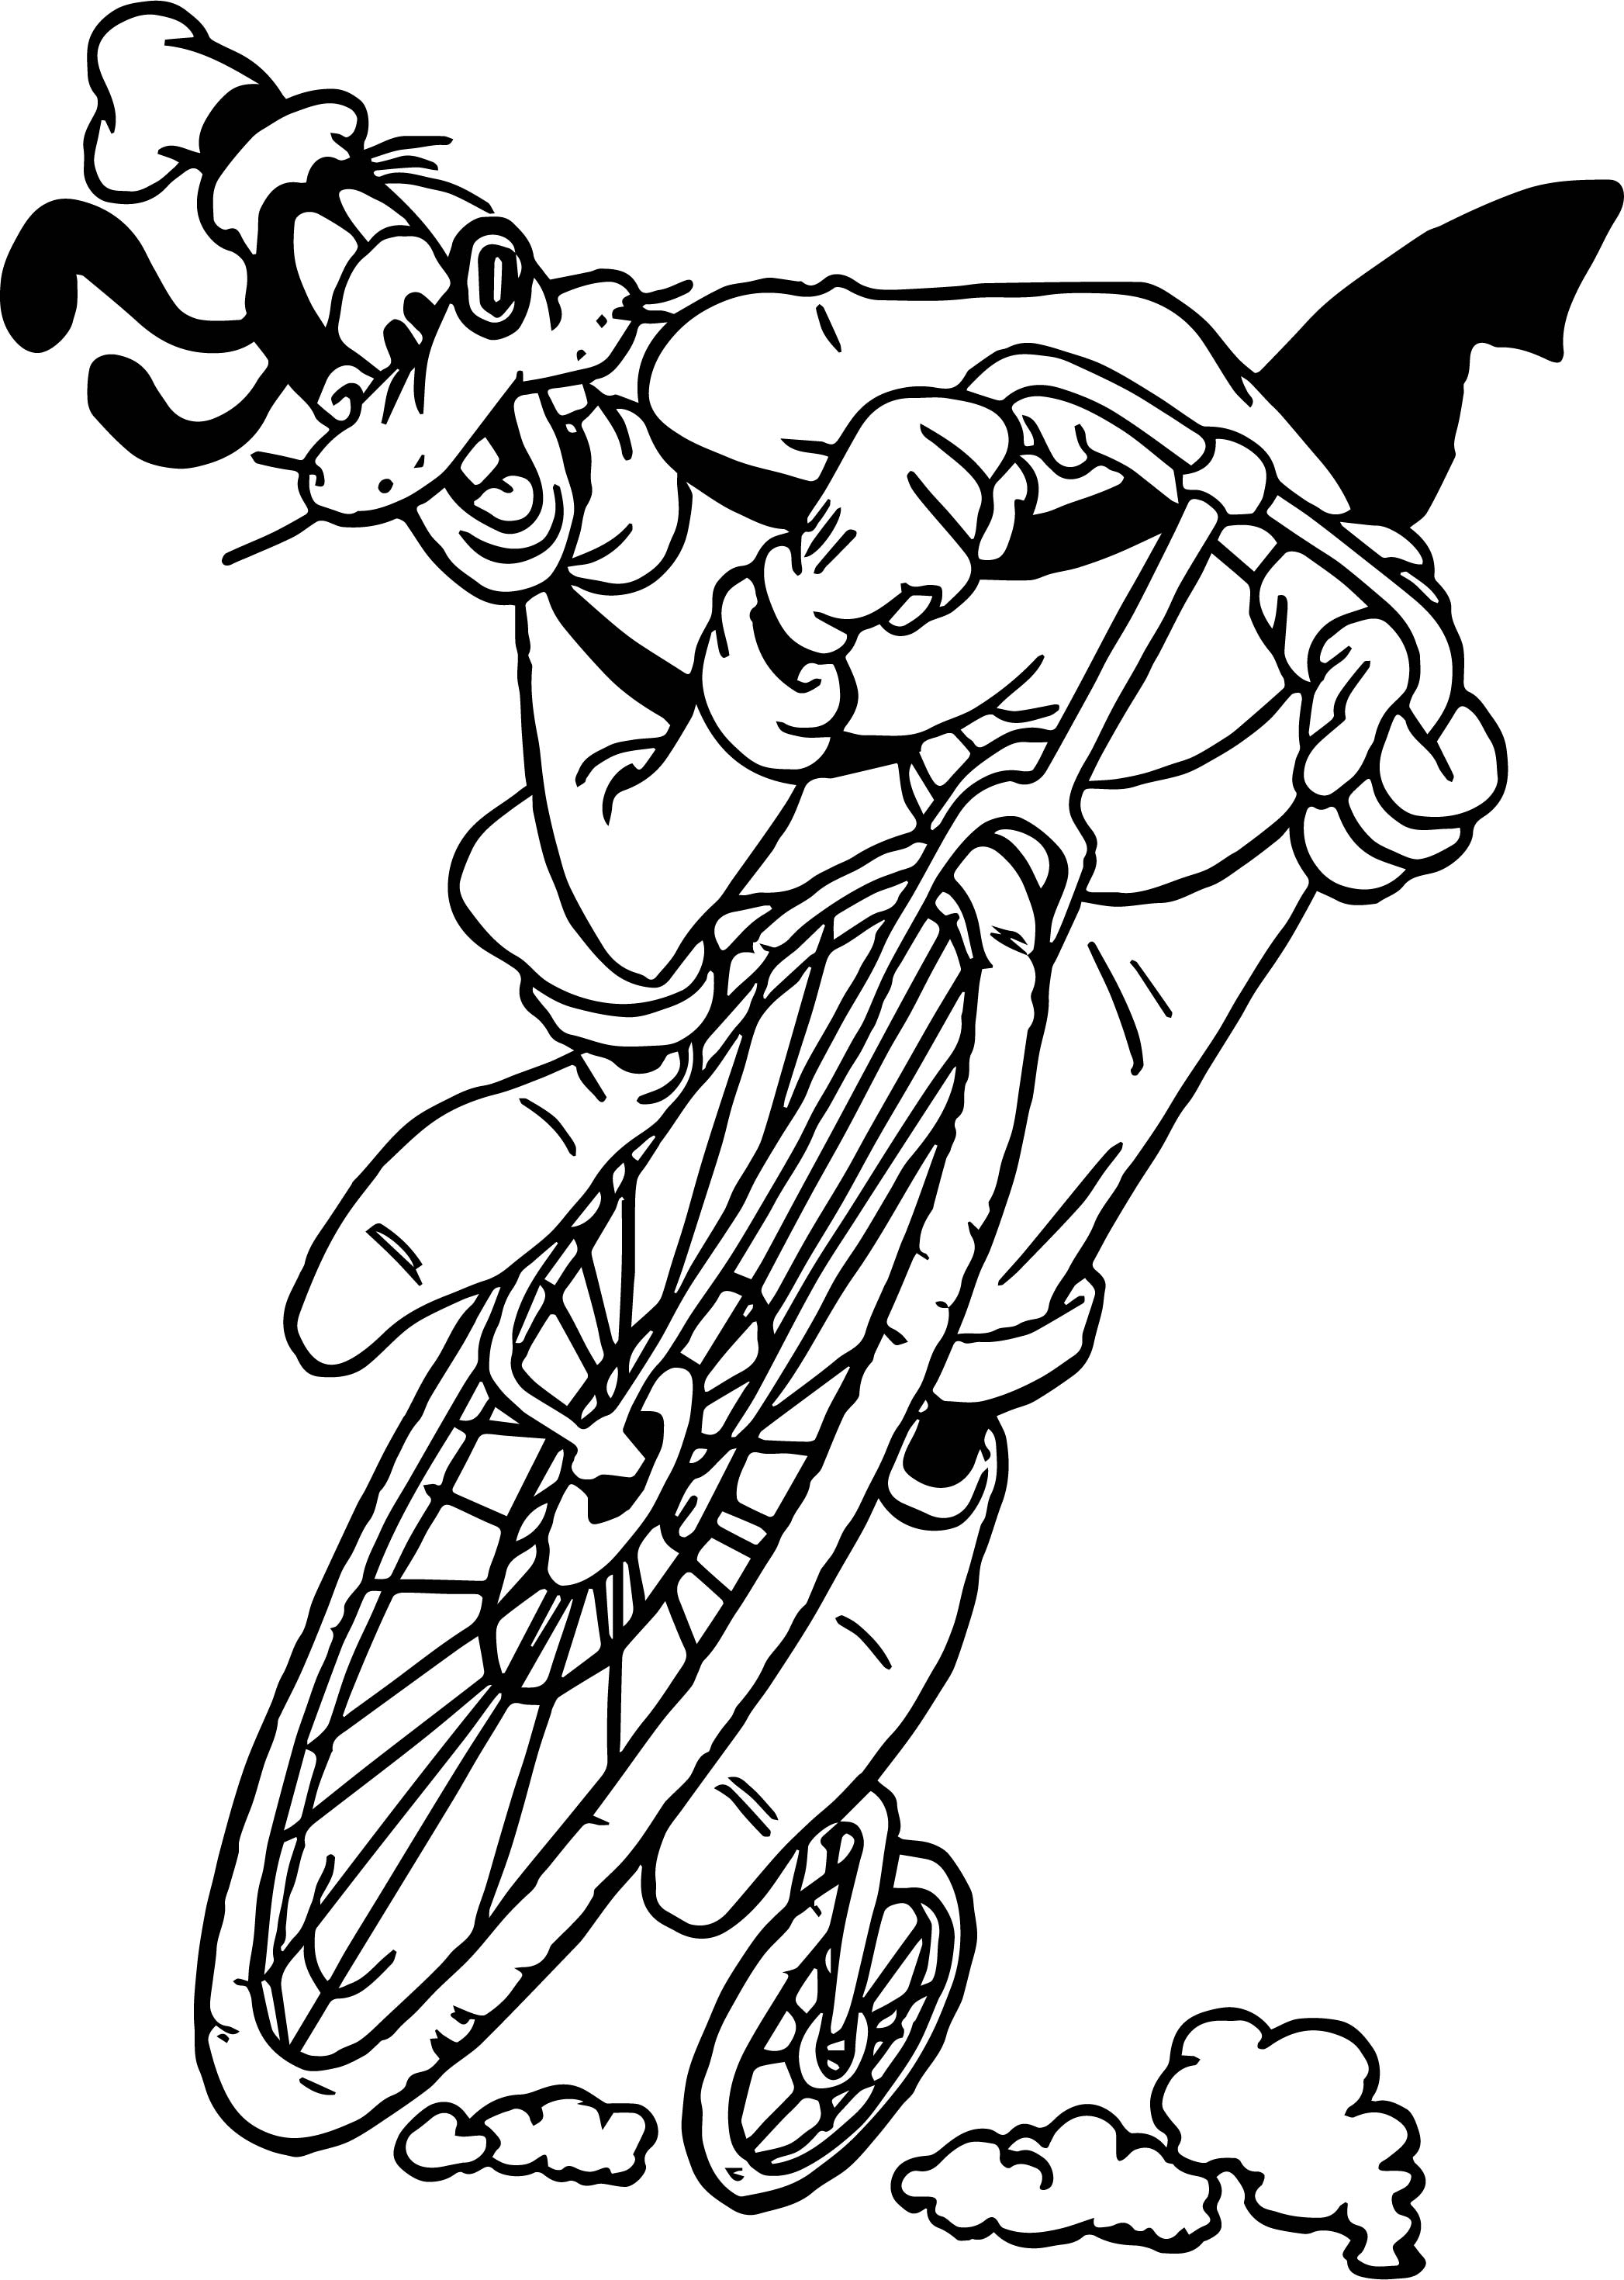 Goofy Bike Coloring Page